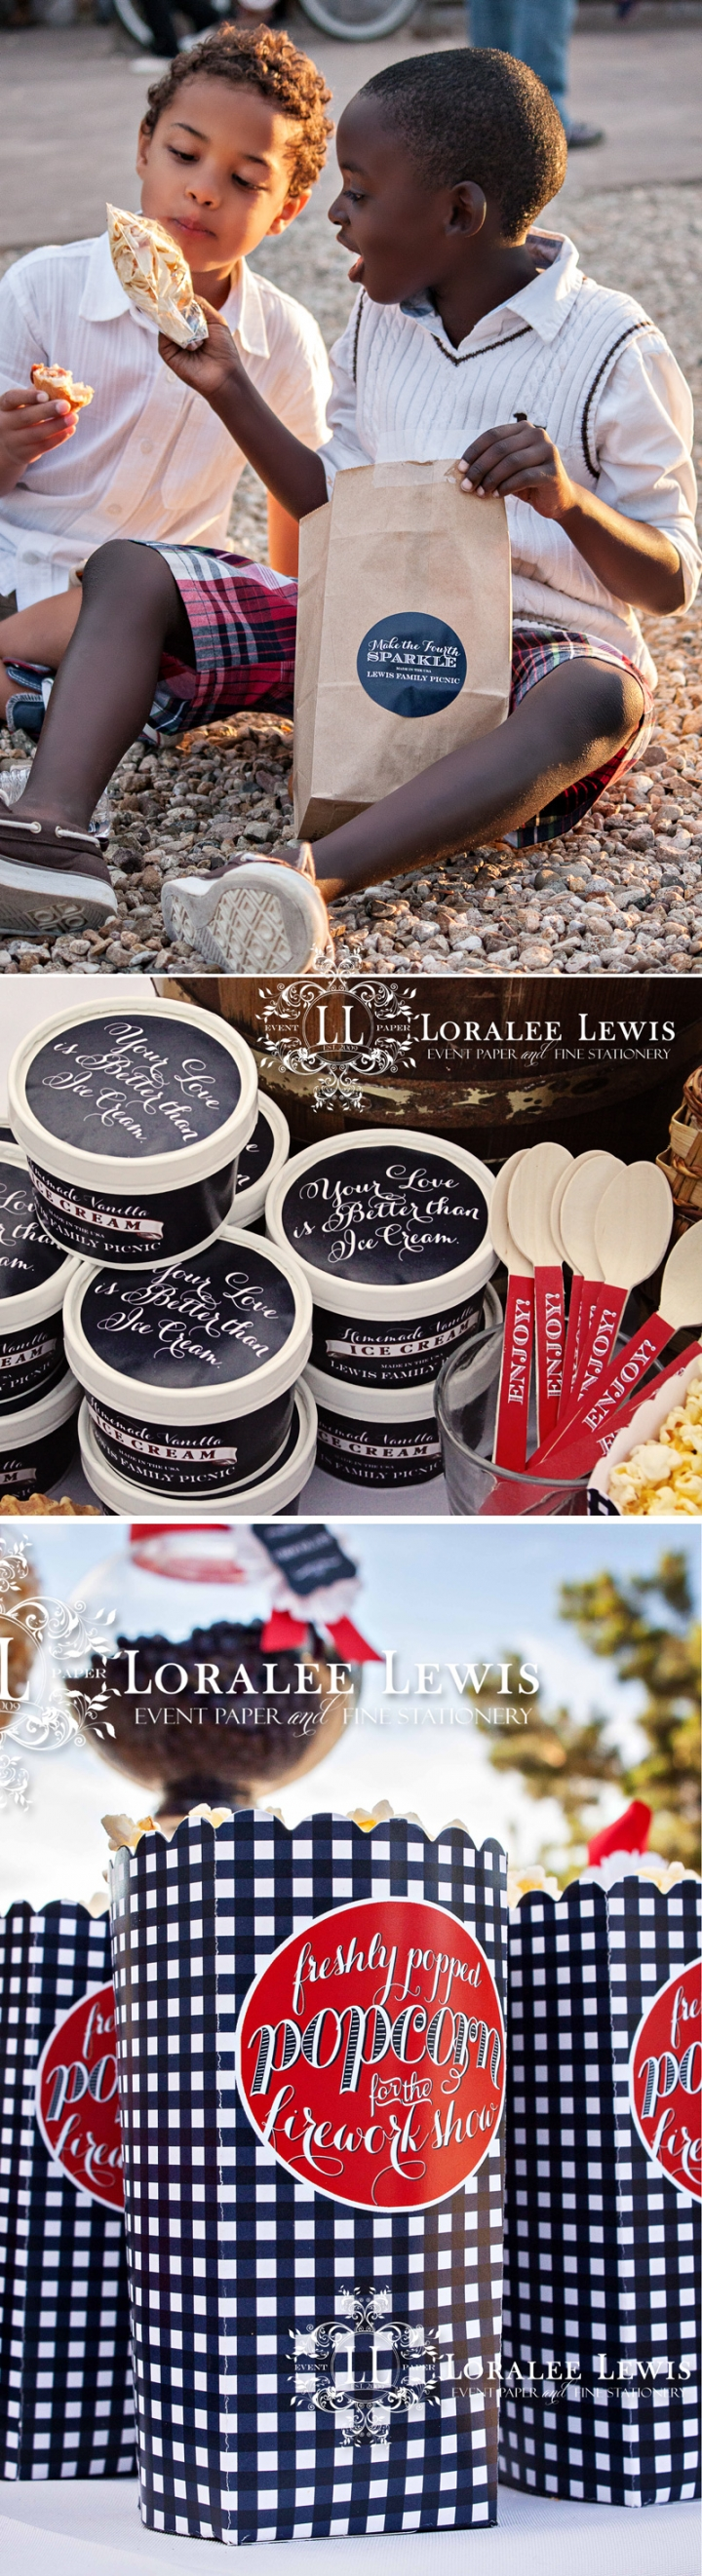 LoraleeLewis-American-Collection-7